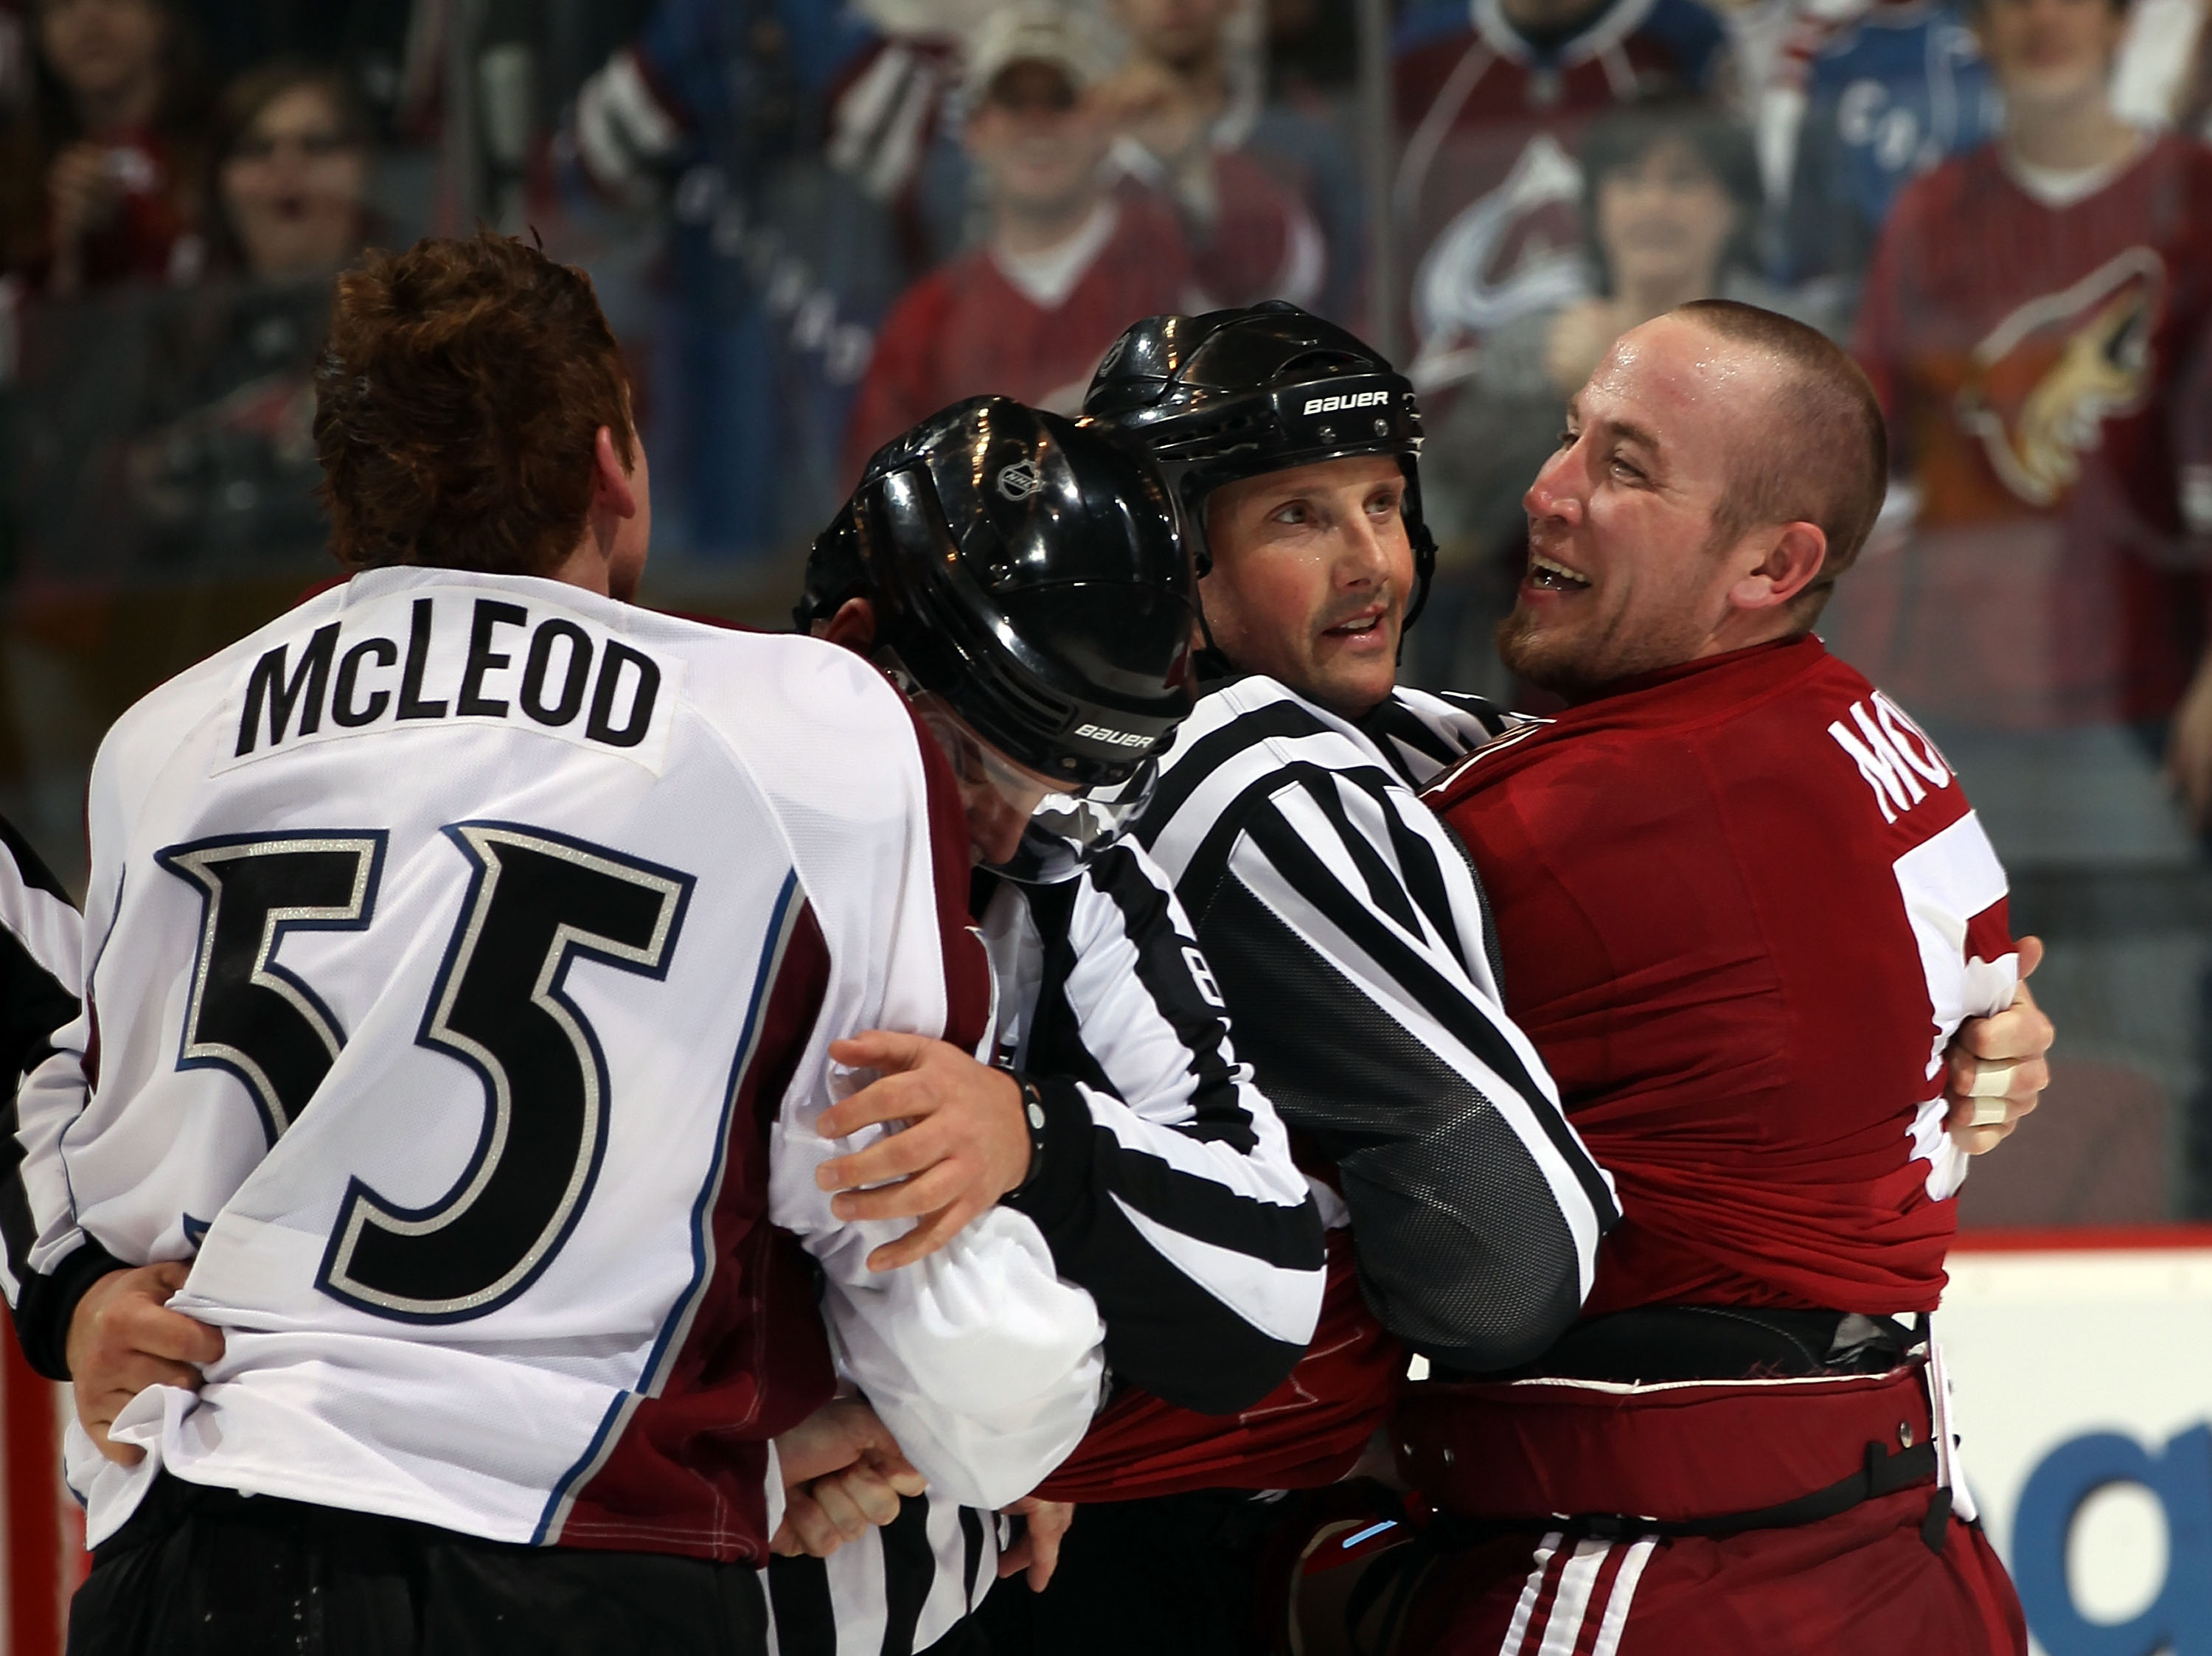 GLENDALE, AZ - FEBRUARY 07: Derek Morris #53 of the Phoenix Coyotes argues with Cody McLeod #55 of the Colorado Avalanche at the Jobing.com Arena on February 7, 2011 in Glendale, Arizona.  (Photo by Bruce Bennett/Getty Images)